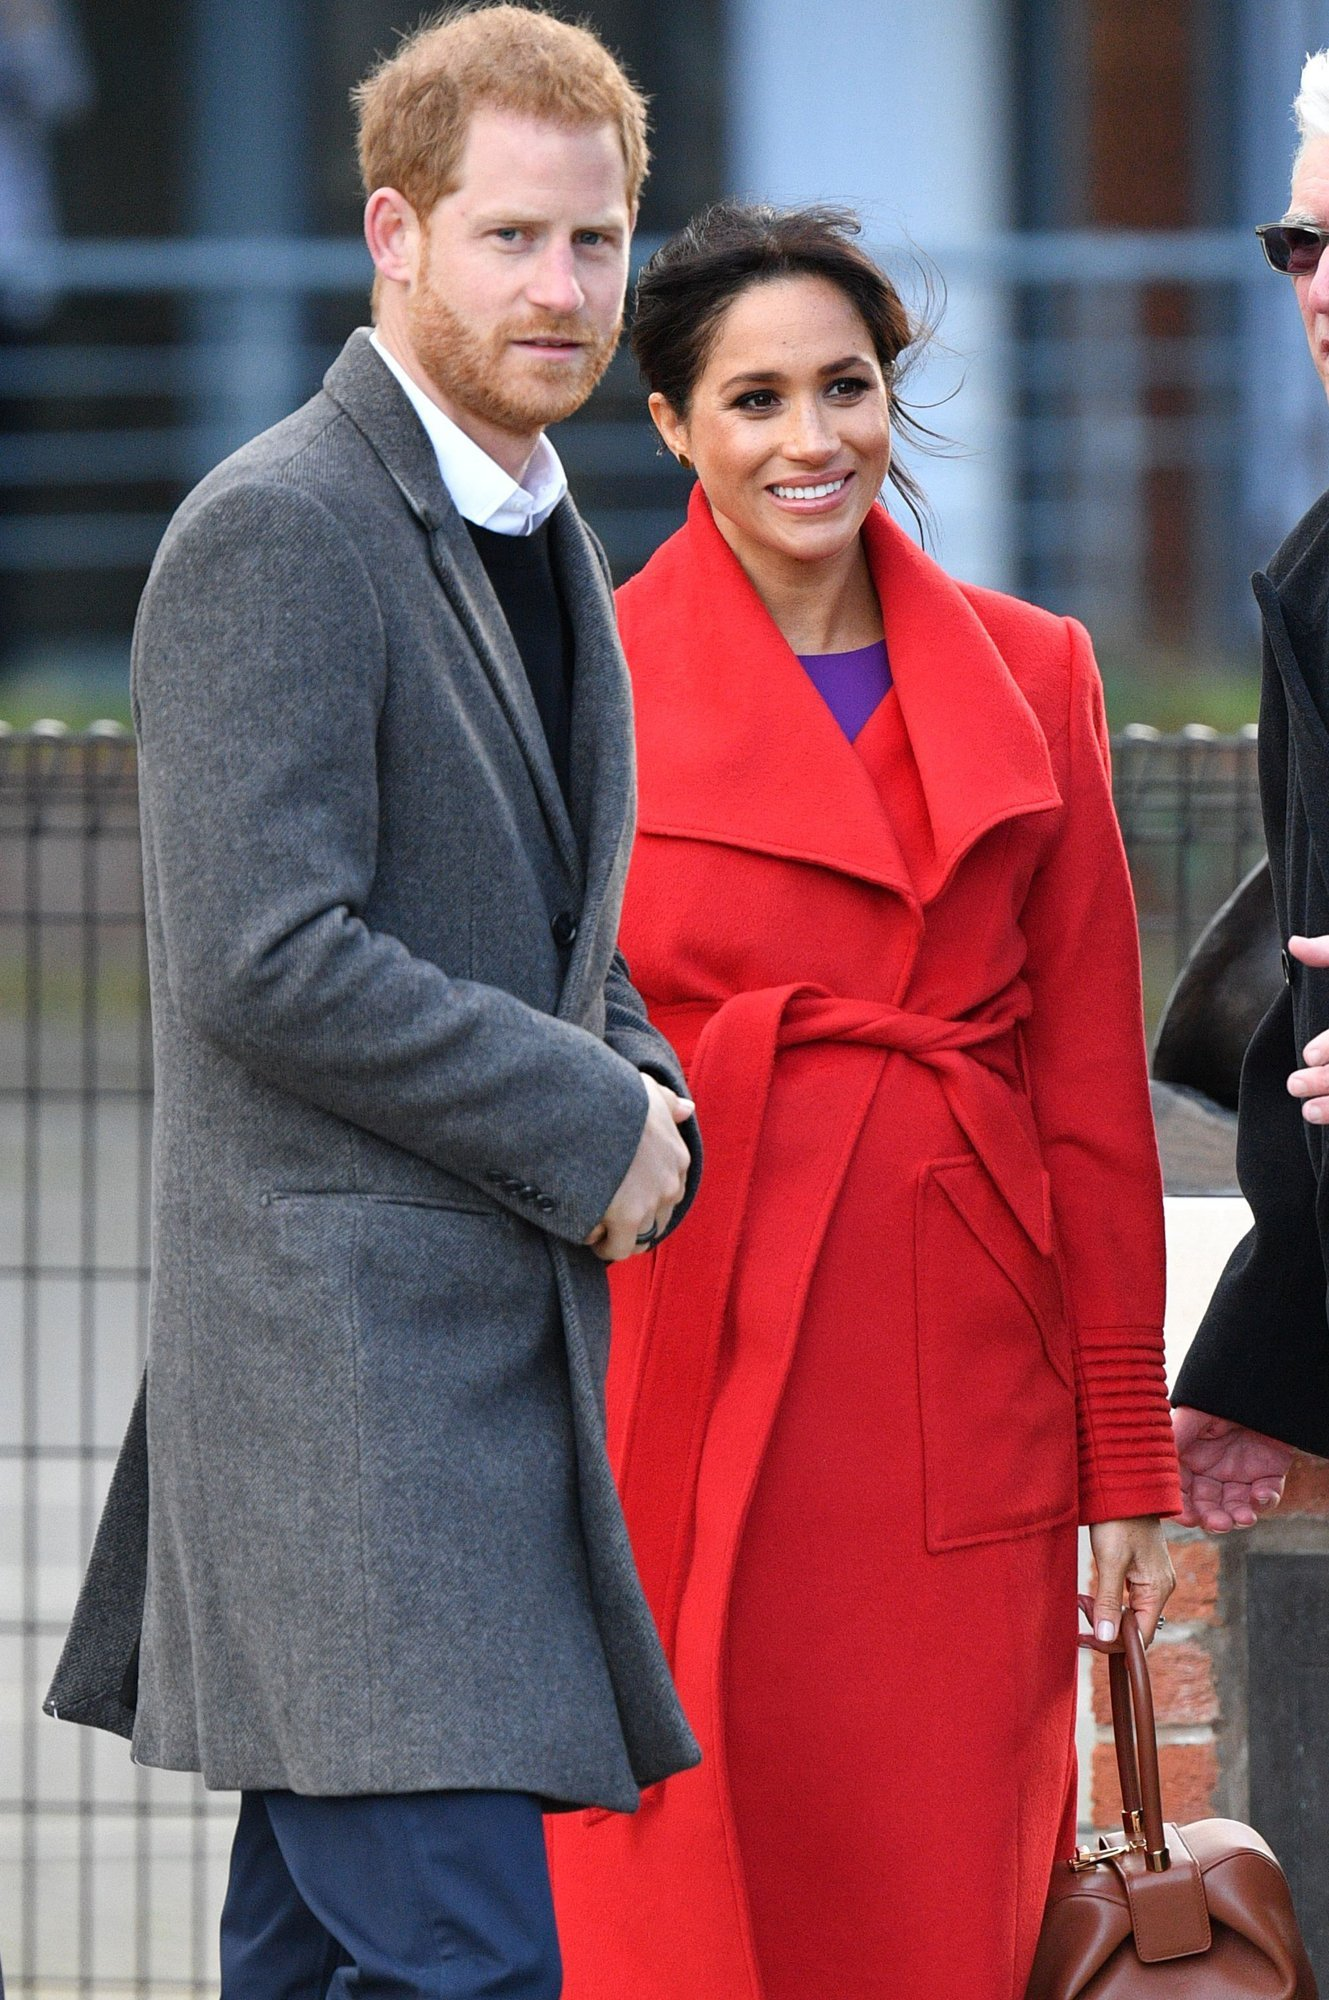 Prince Harry and Meghan Markle's Big Move Out of Kensington Palace Is Just Weeks Away